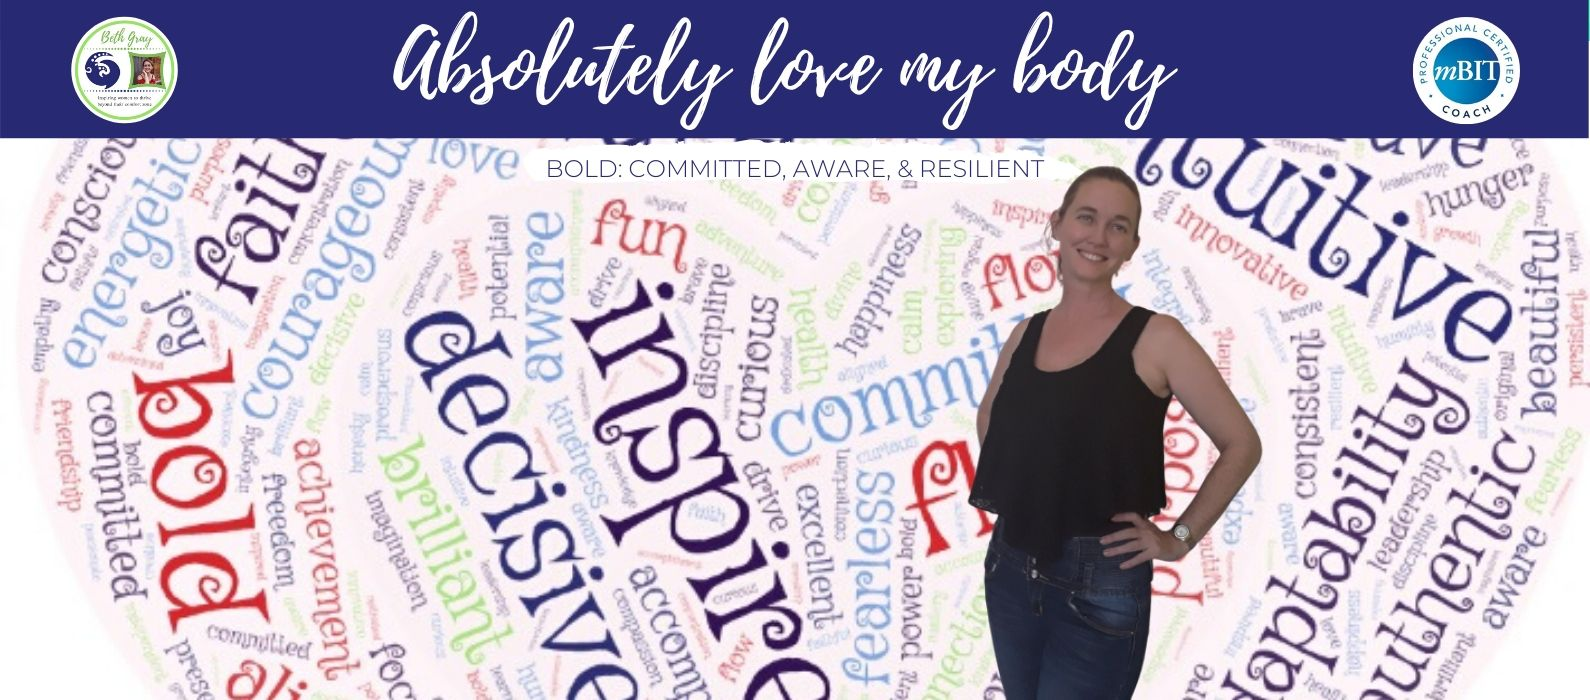 absolutely love my body, learning to love myself, ideal weight, innergetics process, inner energy, inner eating, emotional eating, stuffing down emotions, creativity, courage, bold, intuitive, committed, in flow, courageous, aware, resilient